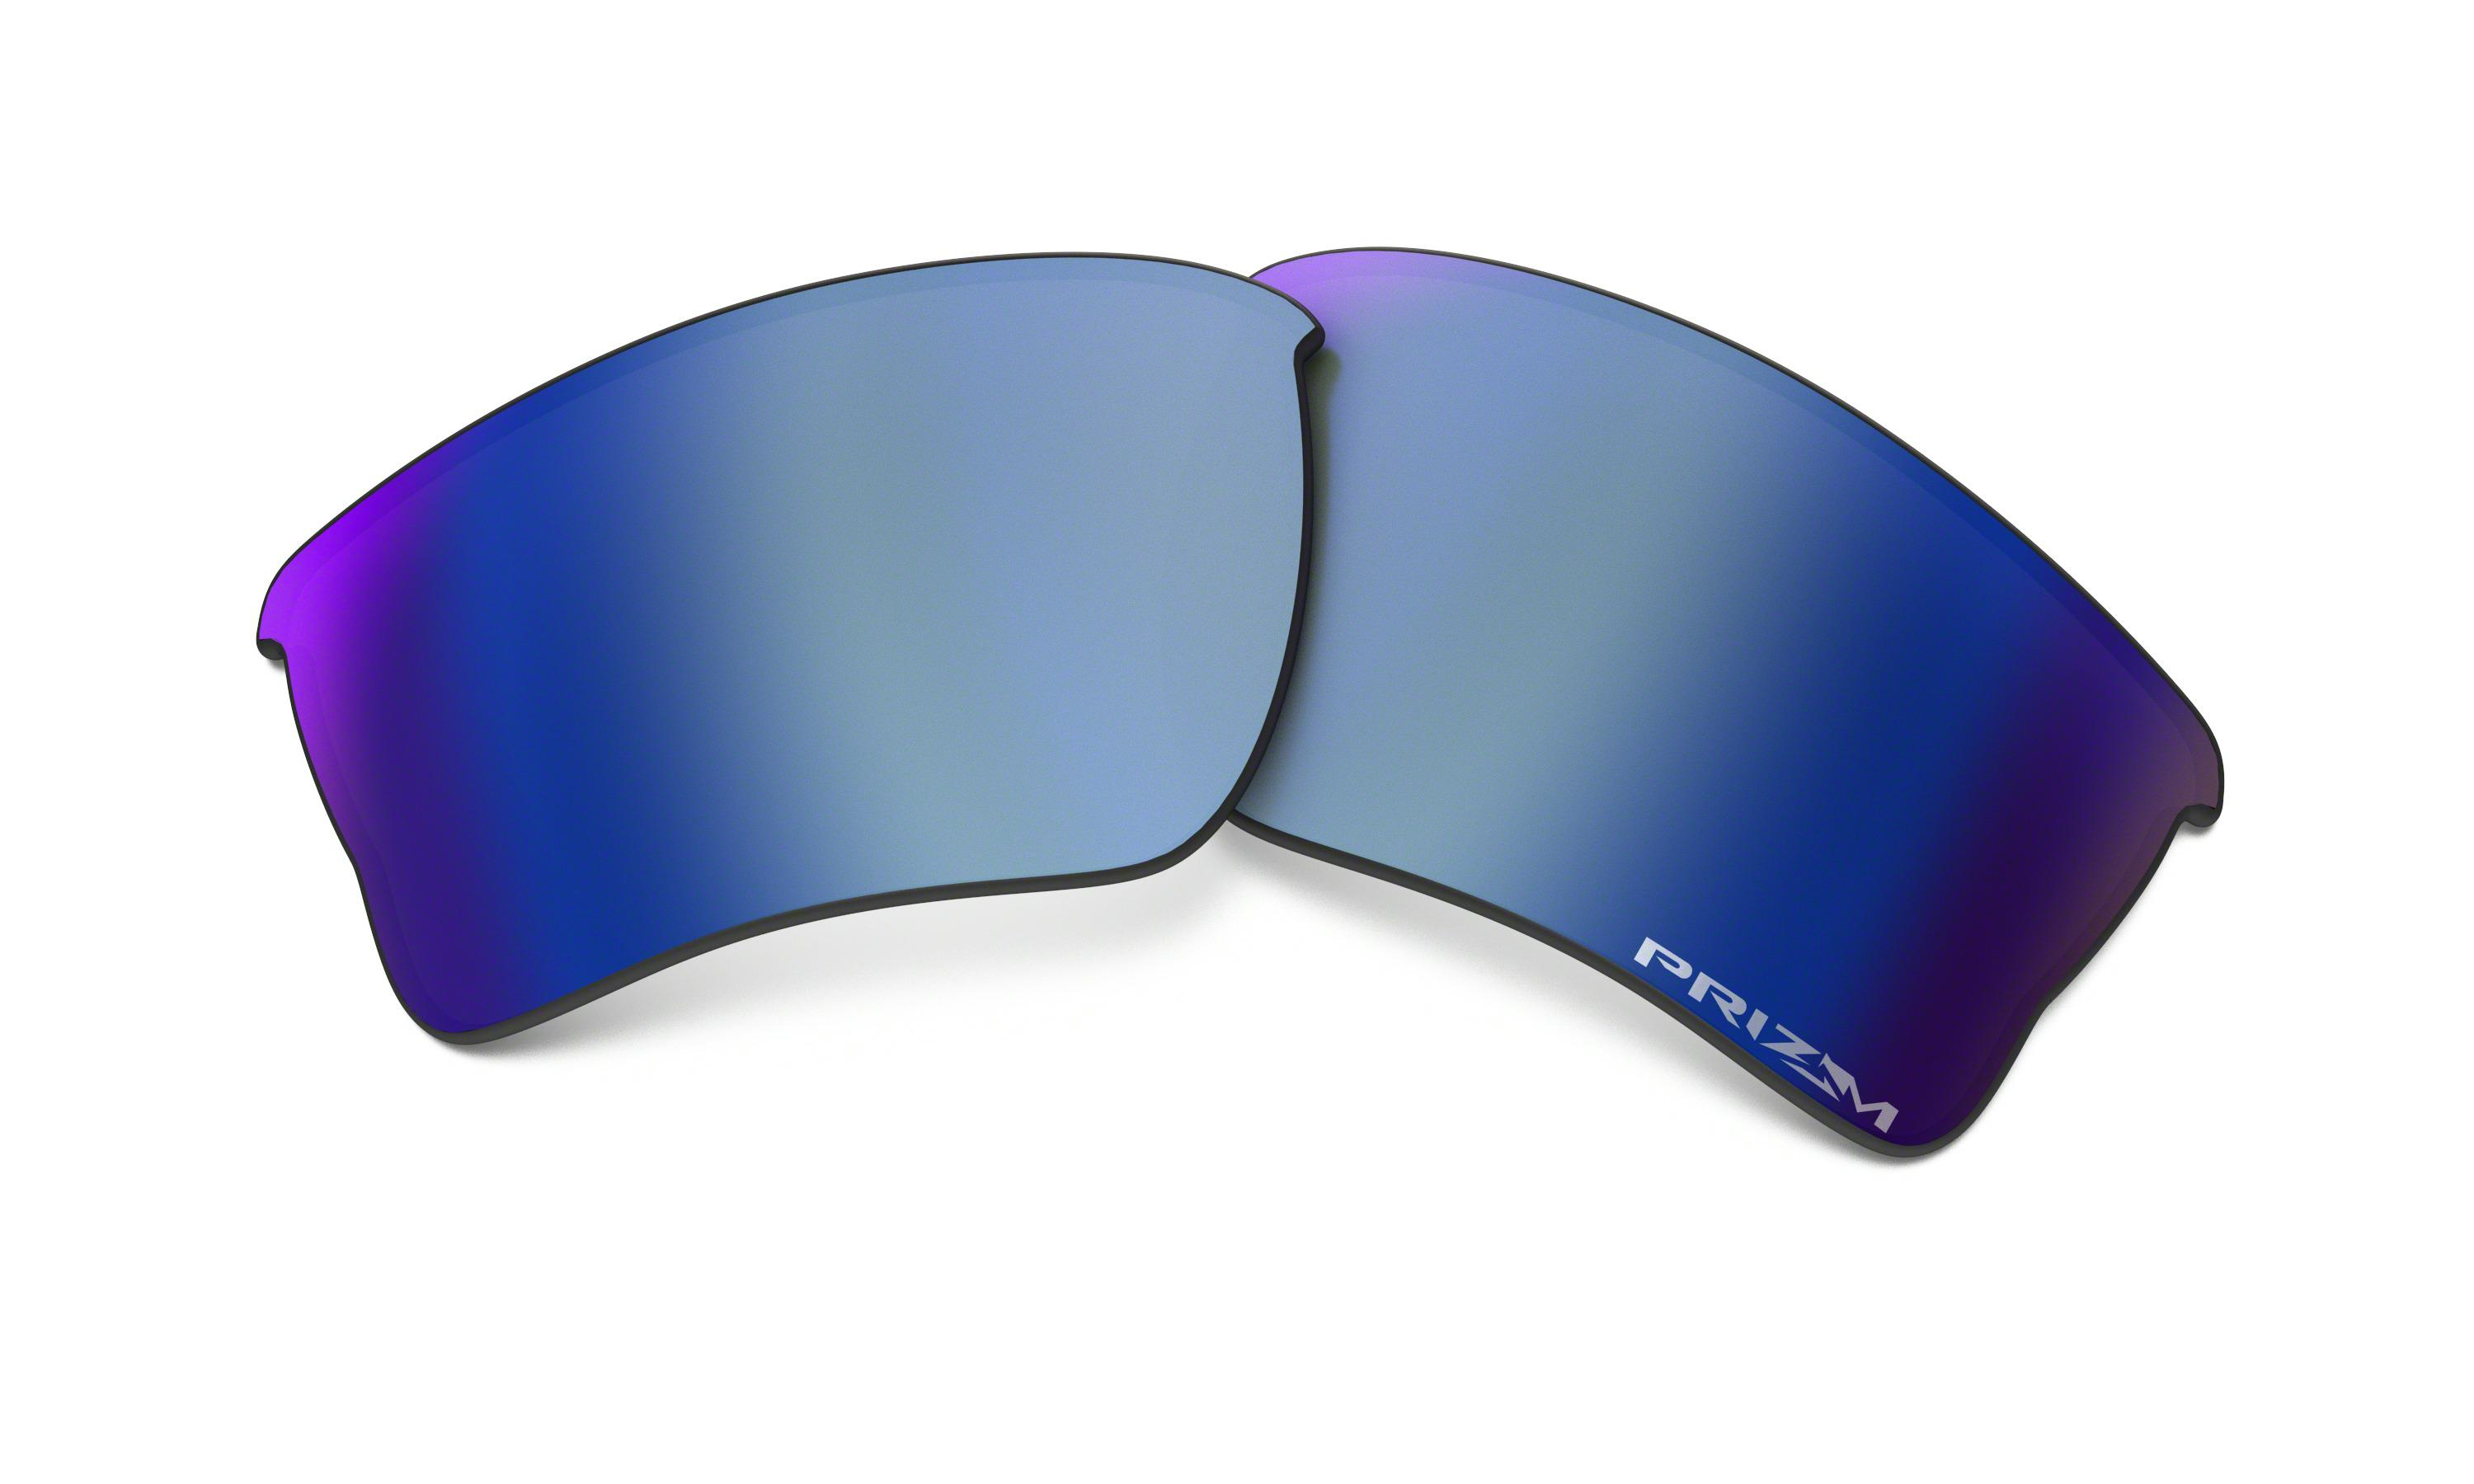 ebb95981a0d Lyst - Oakley Quarter Jacket® (youth Fit) Replacement Lenses in Blue ...